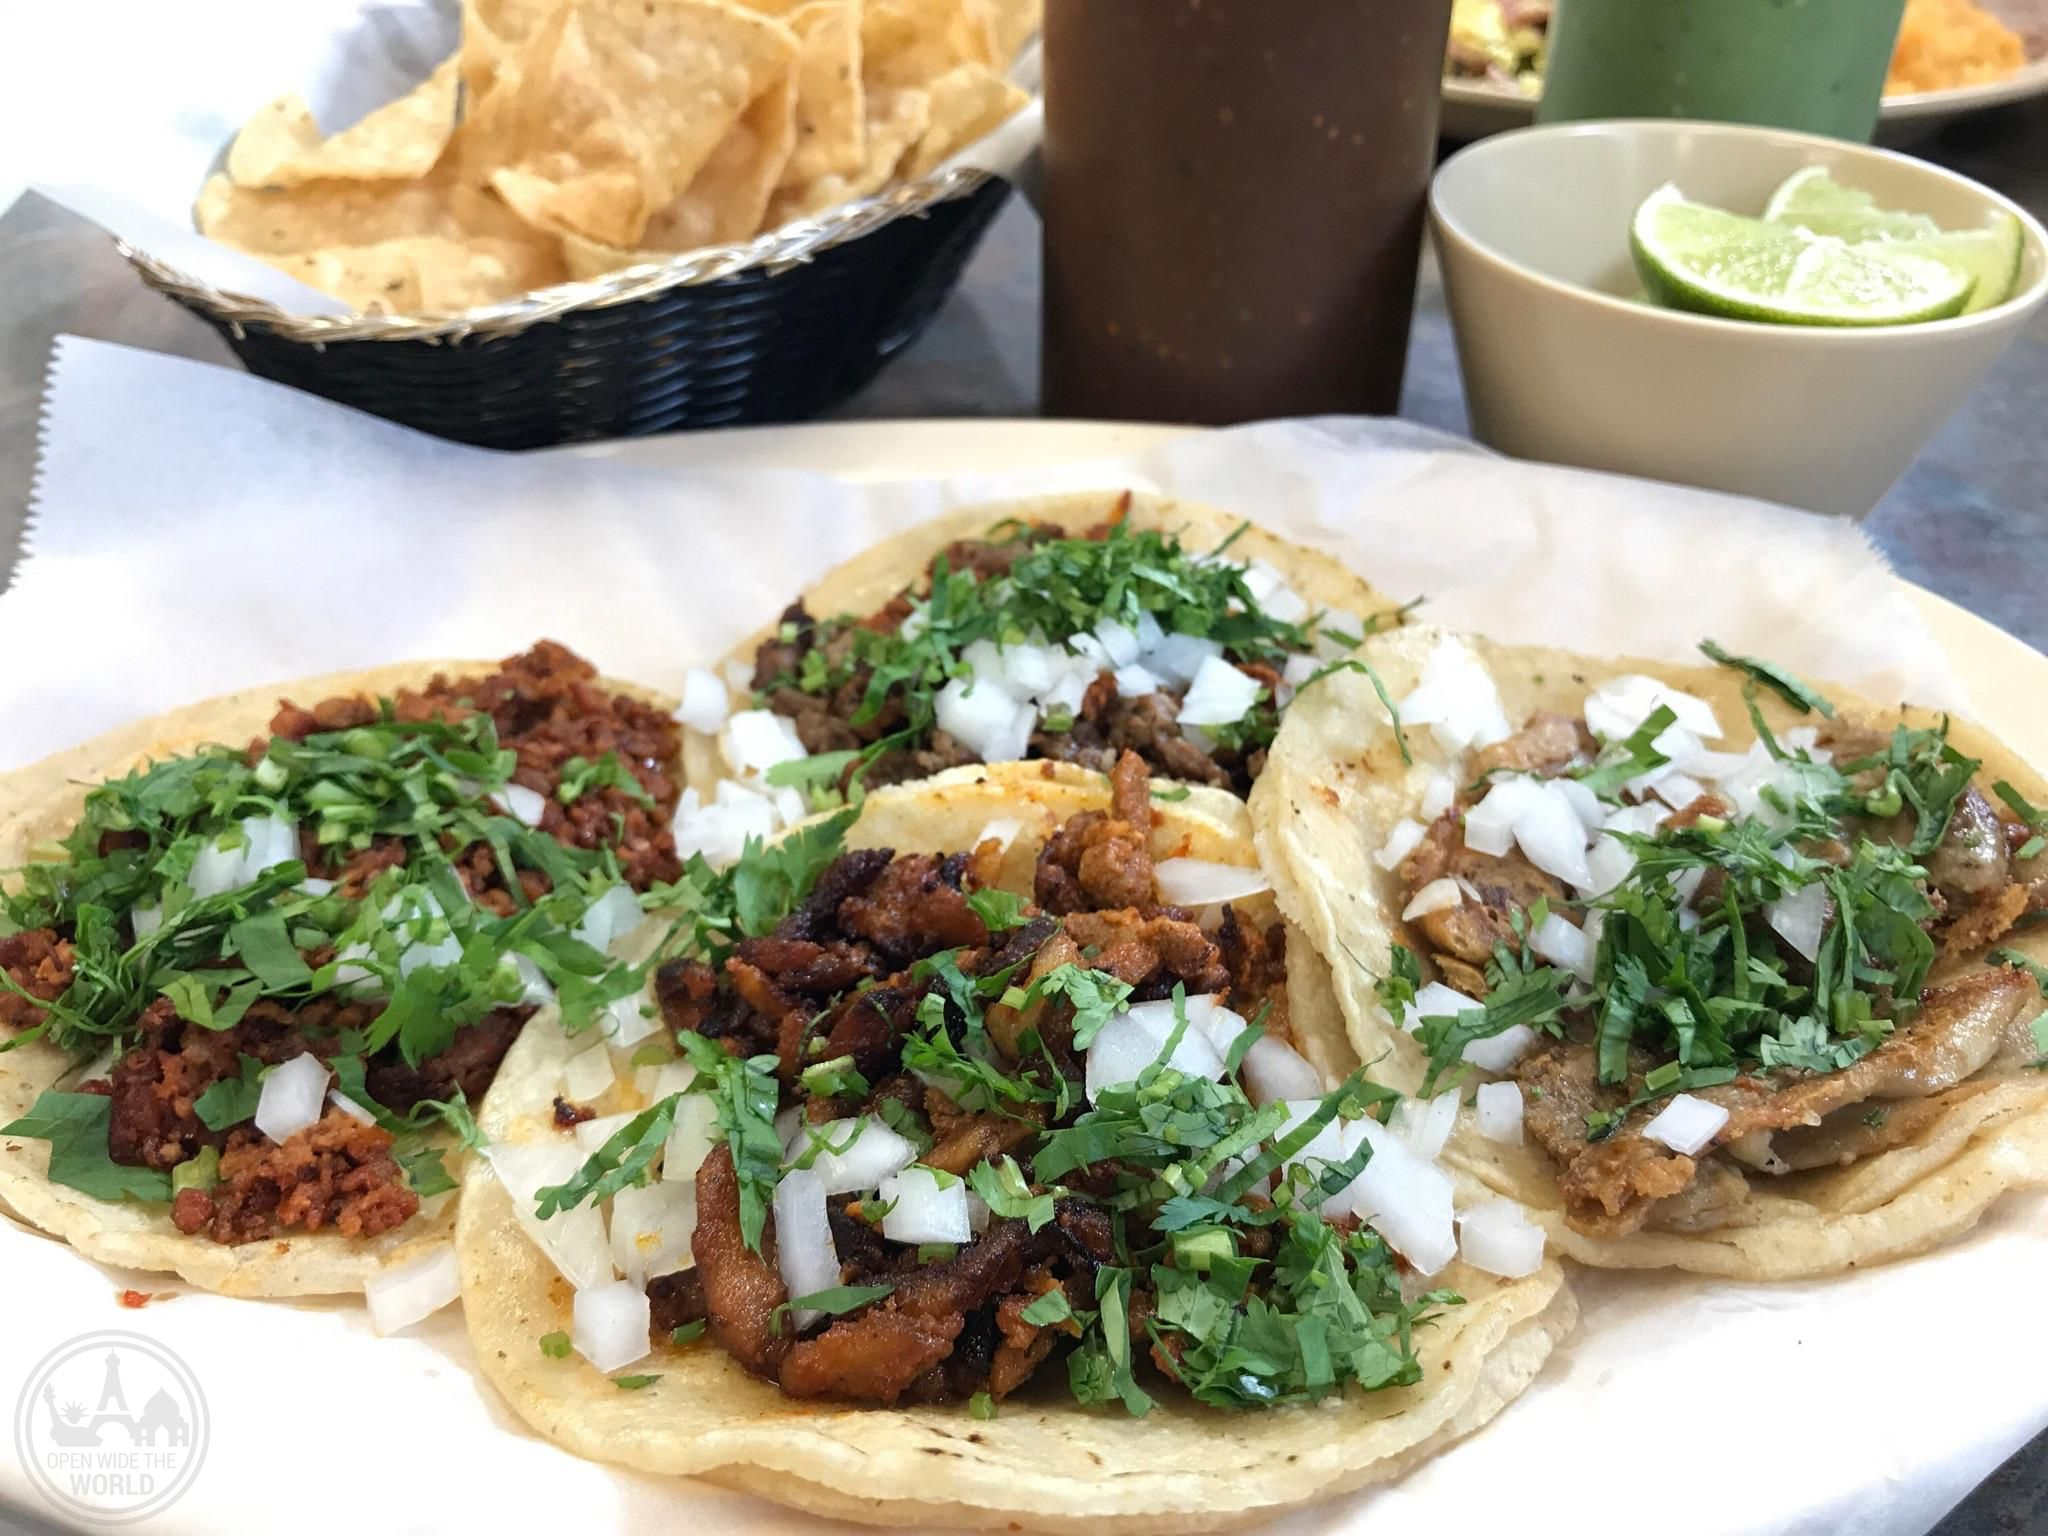 Authentic Mexican food in a non-pretentious atmosphere, just one of the reasons why Aurora is the ideal destination for Chicago urbanites looking to spend a day outside the City. #hipster #openwidetheworld